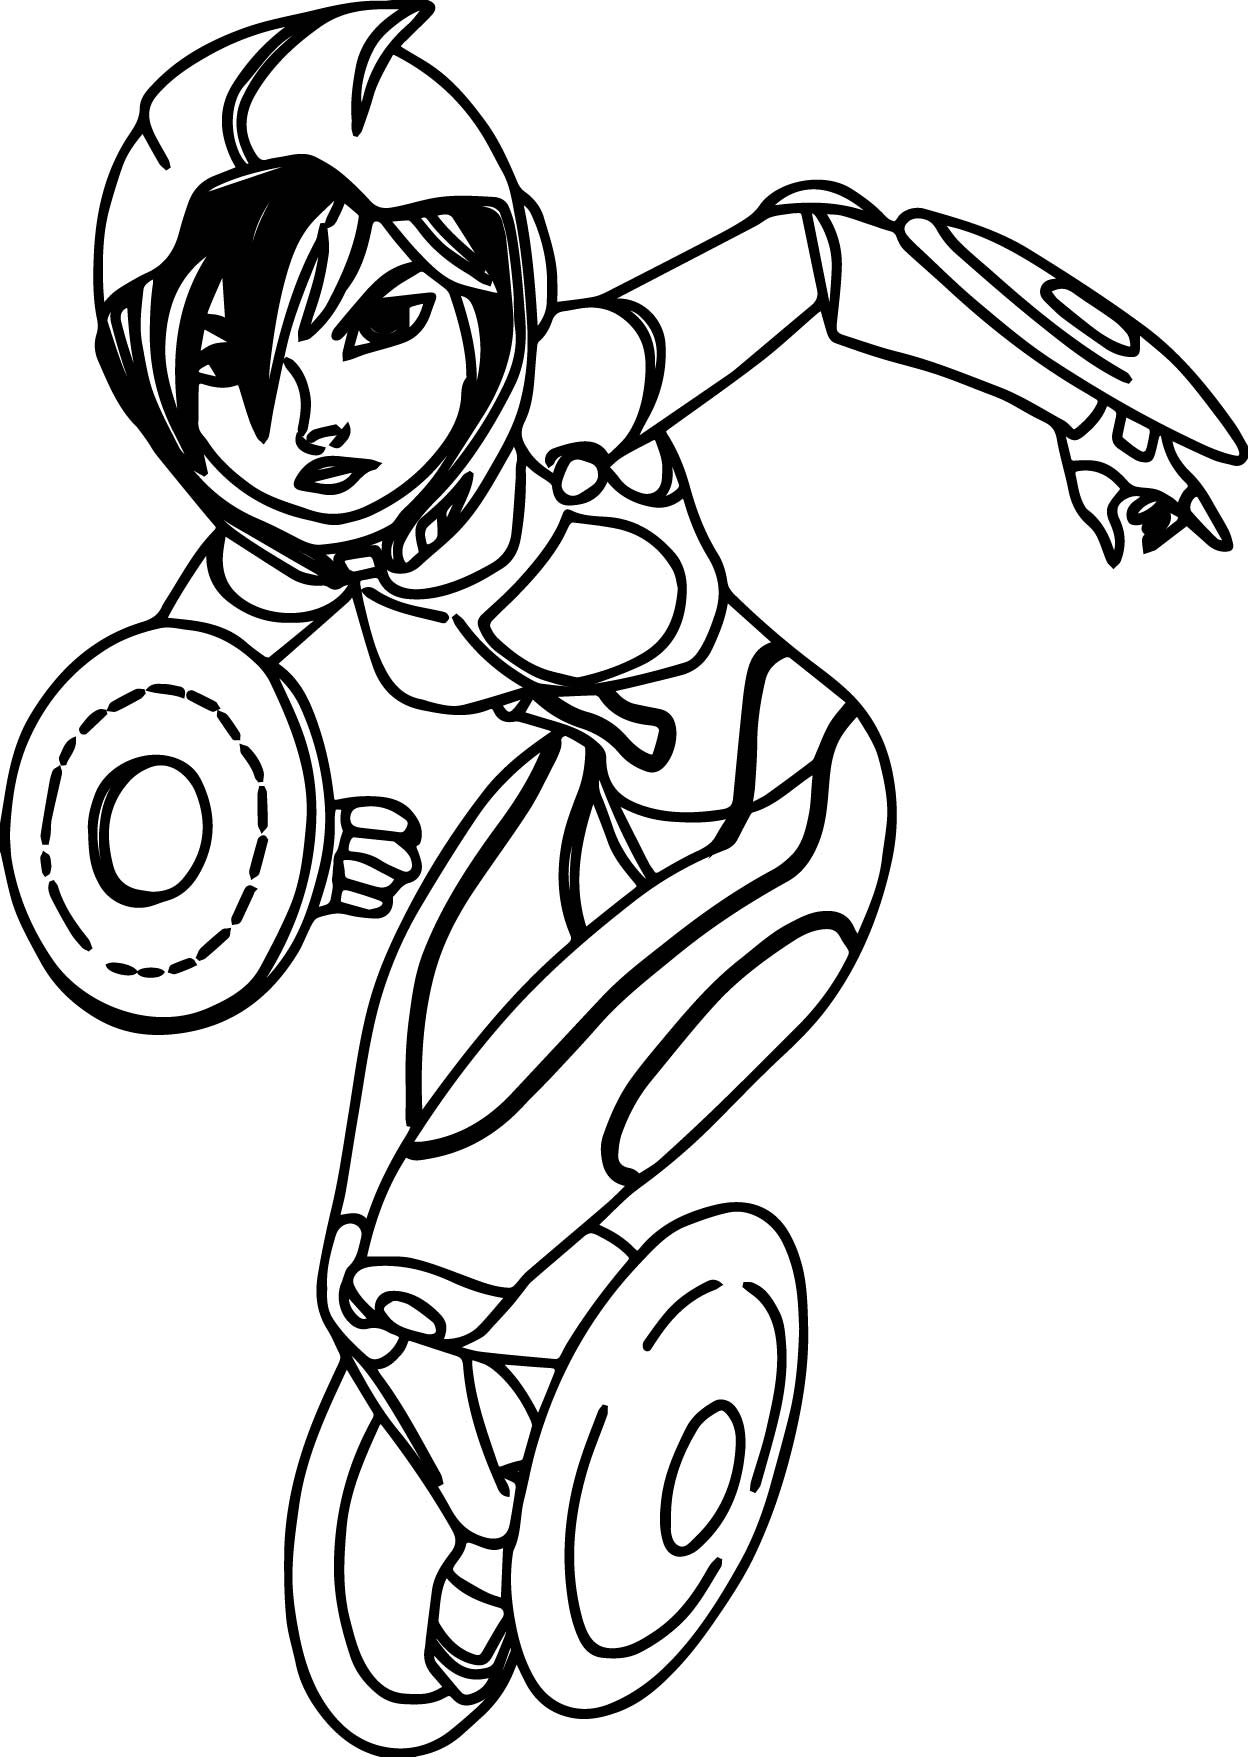 big hero 6 coloring pages big hero 6 coloring pages free download on clipartmag 6 big pages hero coloring